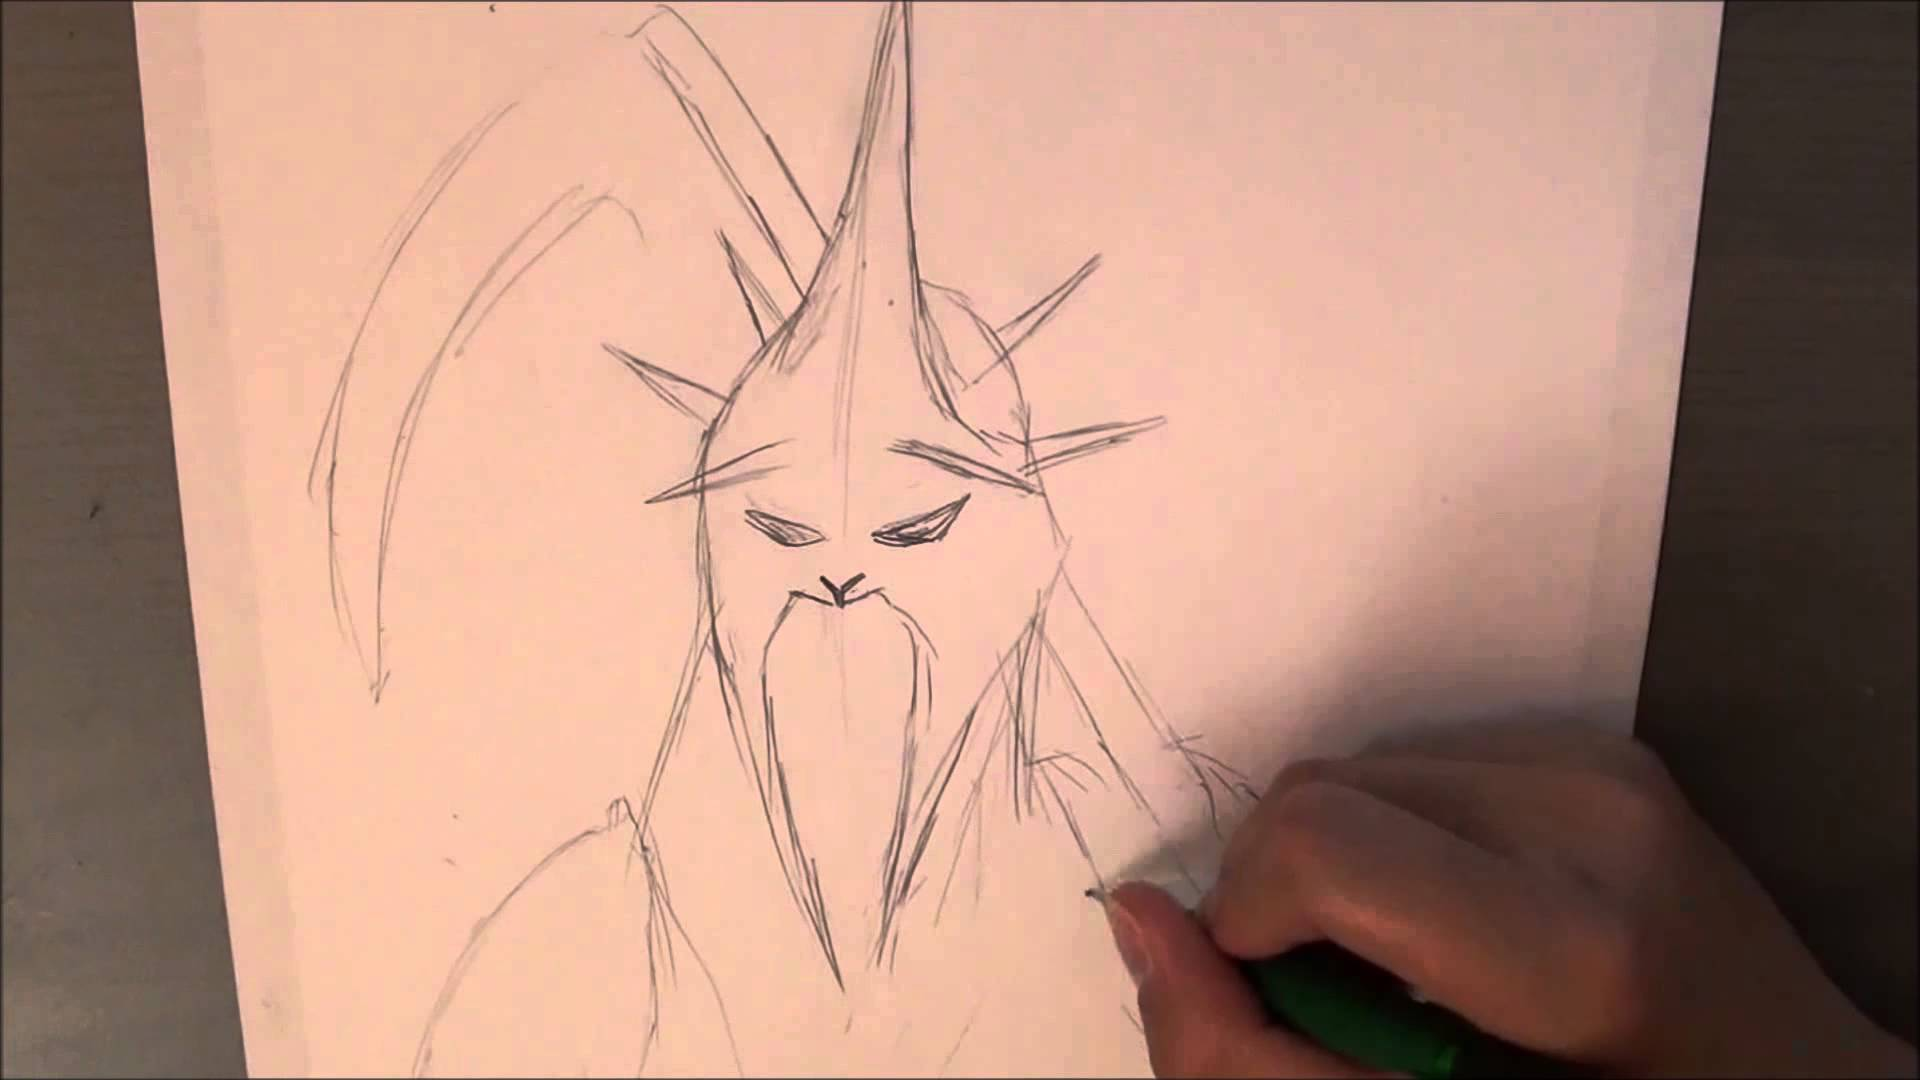 Drawn scythe real life Drawing with YouTube Nazgul with